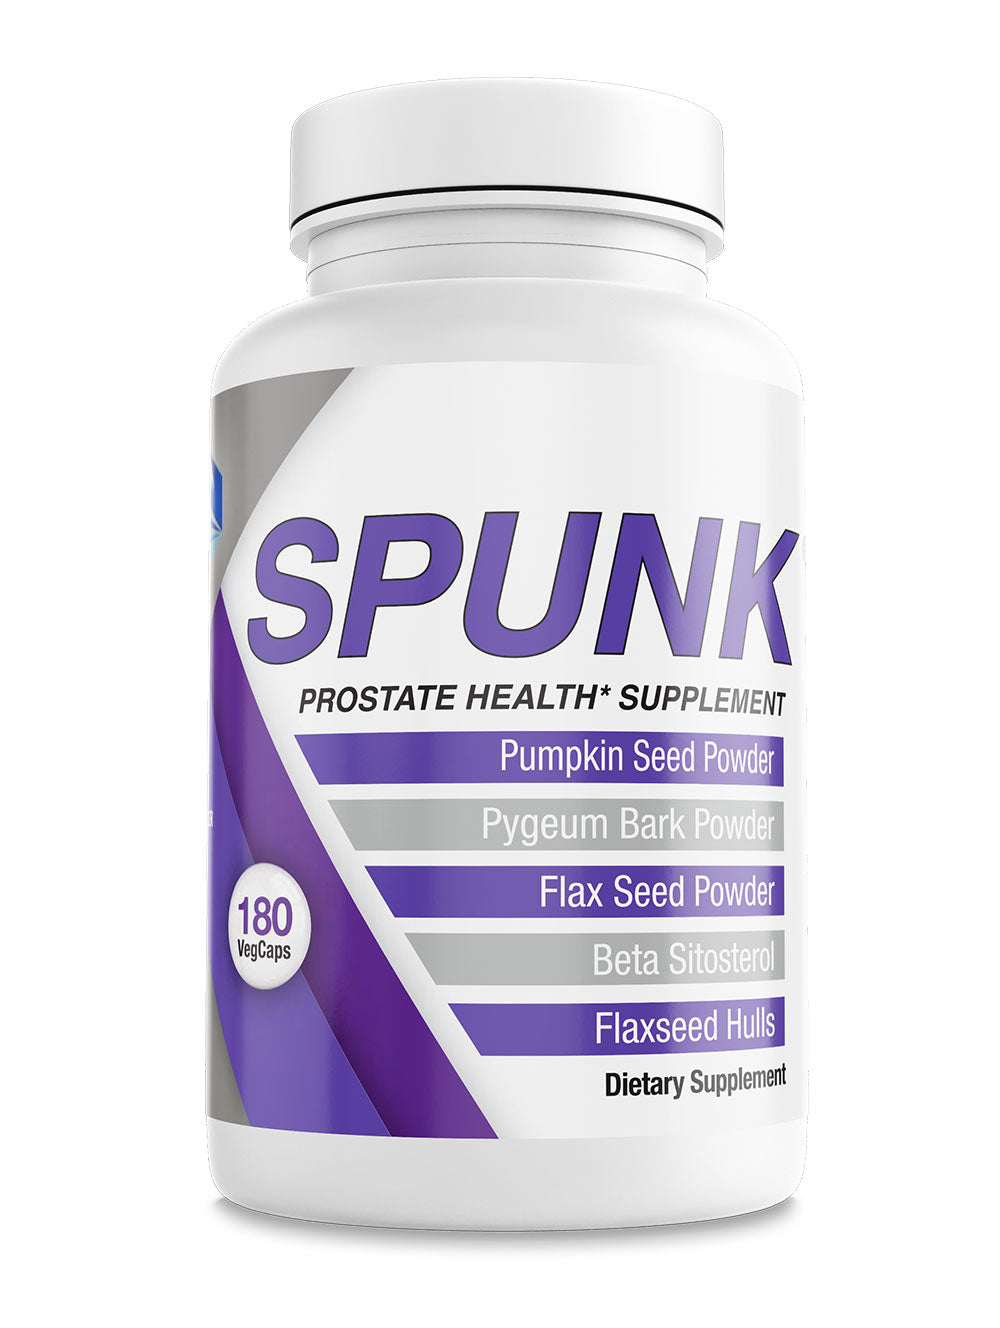 SPUNK I 180 capsules I 1 bottle I 3 MONTH SUPPLY